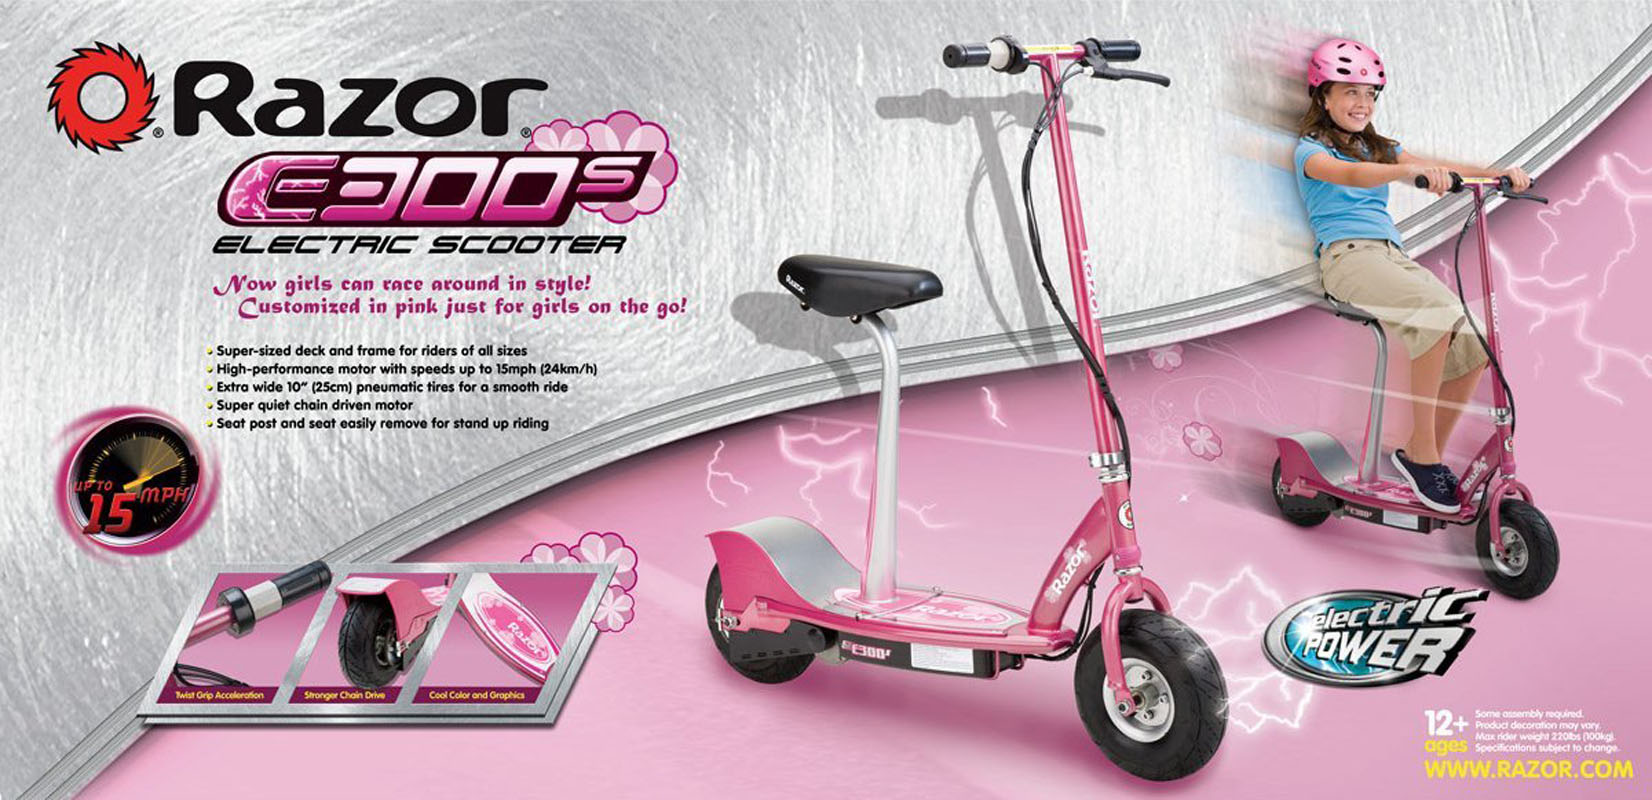 Razor E300S 15 MPH Seated or Stand Girls Electric Scooter, Pink (Sweet Pea) - Walmart.com